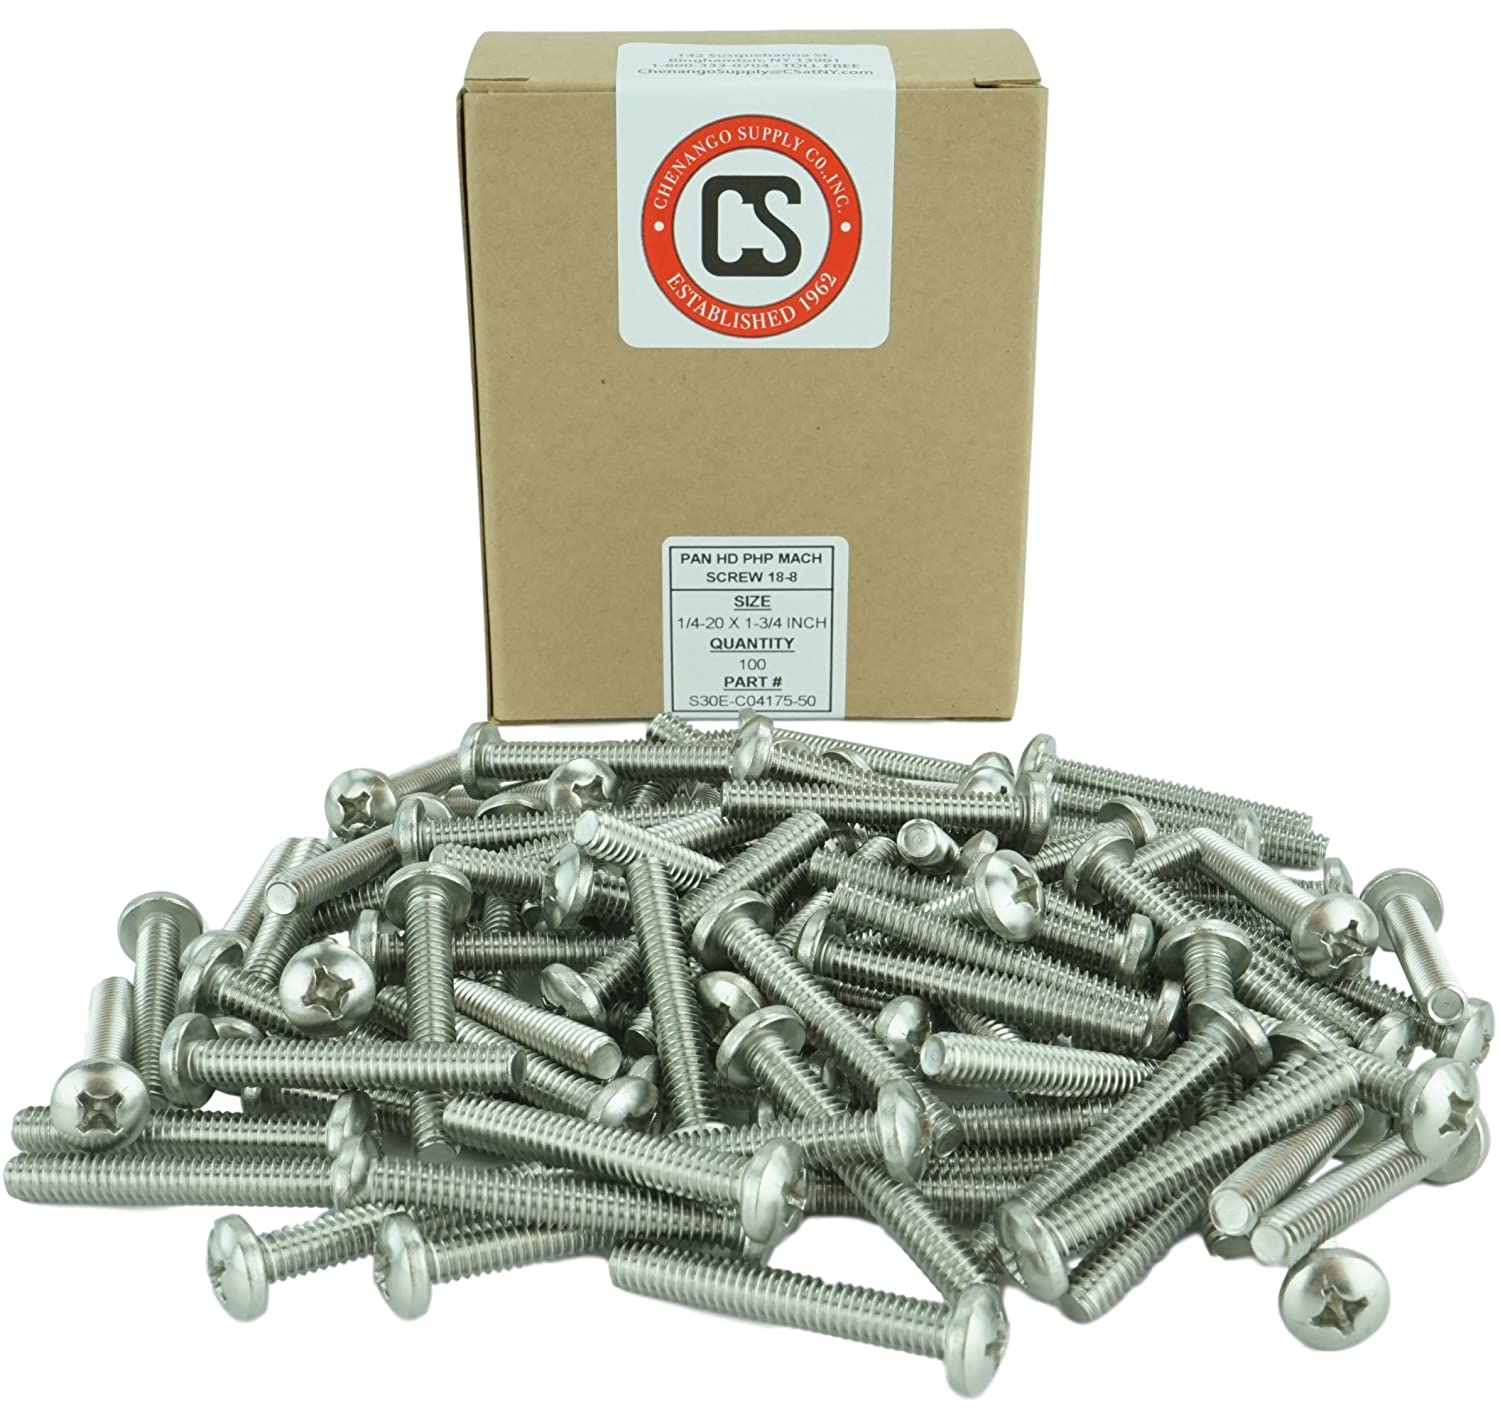 Machine Thread Pan Head Machine Screws Full Thread Stainless Steel 18-8 1//2 to 3 Lengths Available 1//4-20 x 3 Phillips Drive Stainless 1//4-20 x 3